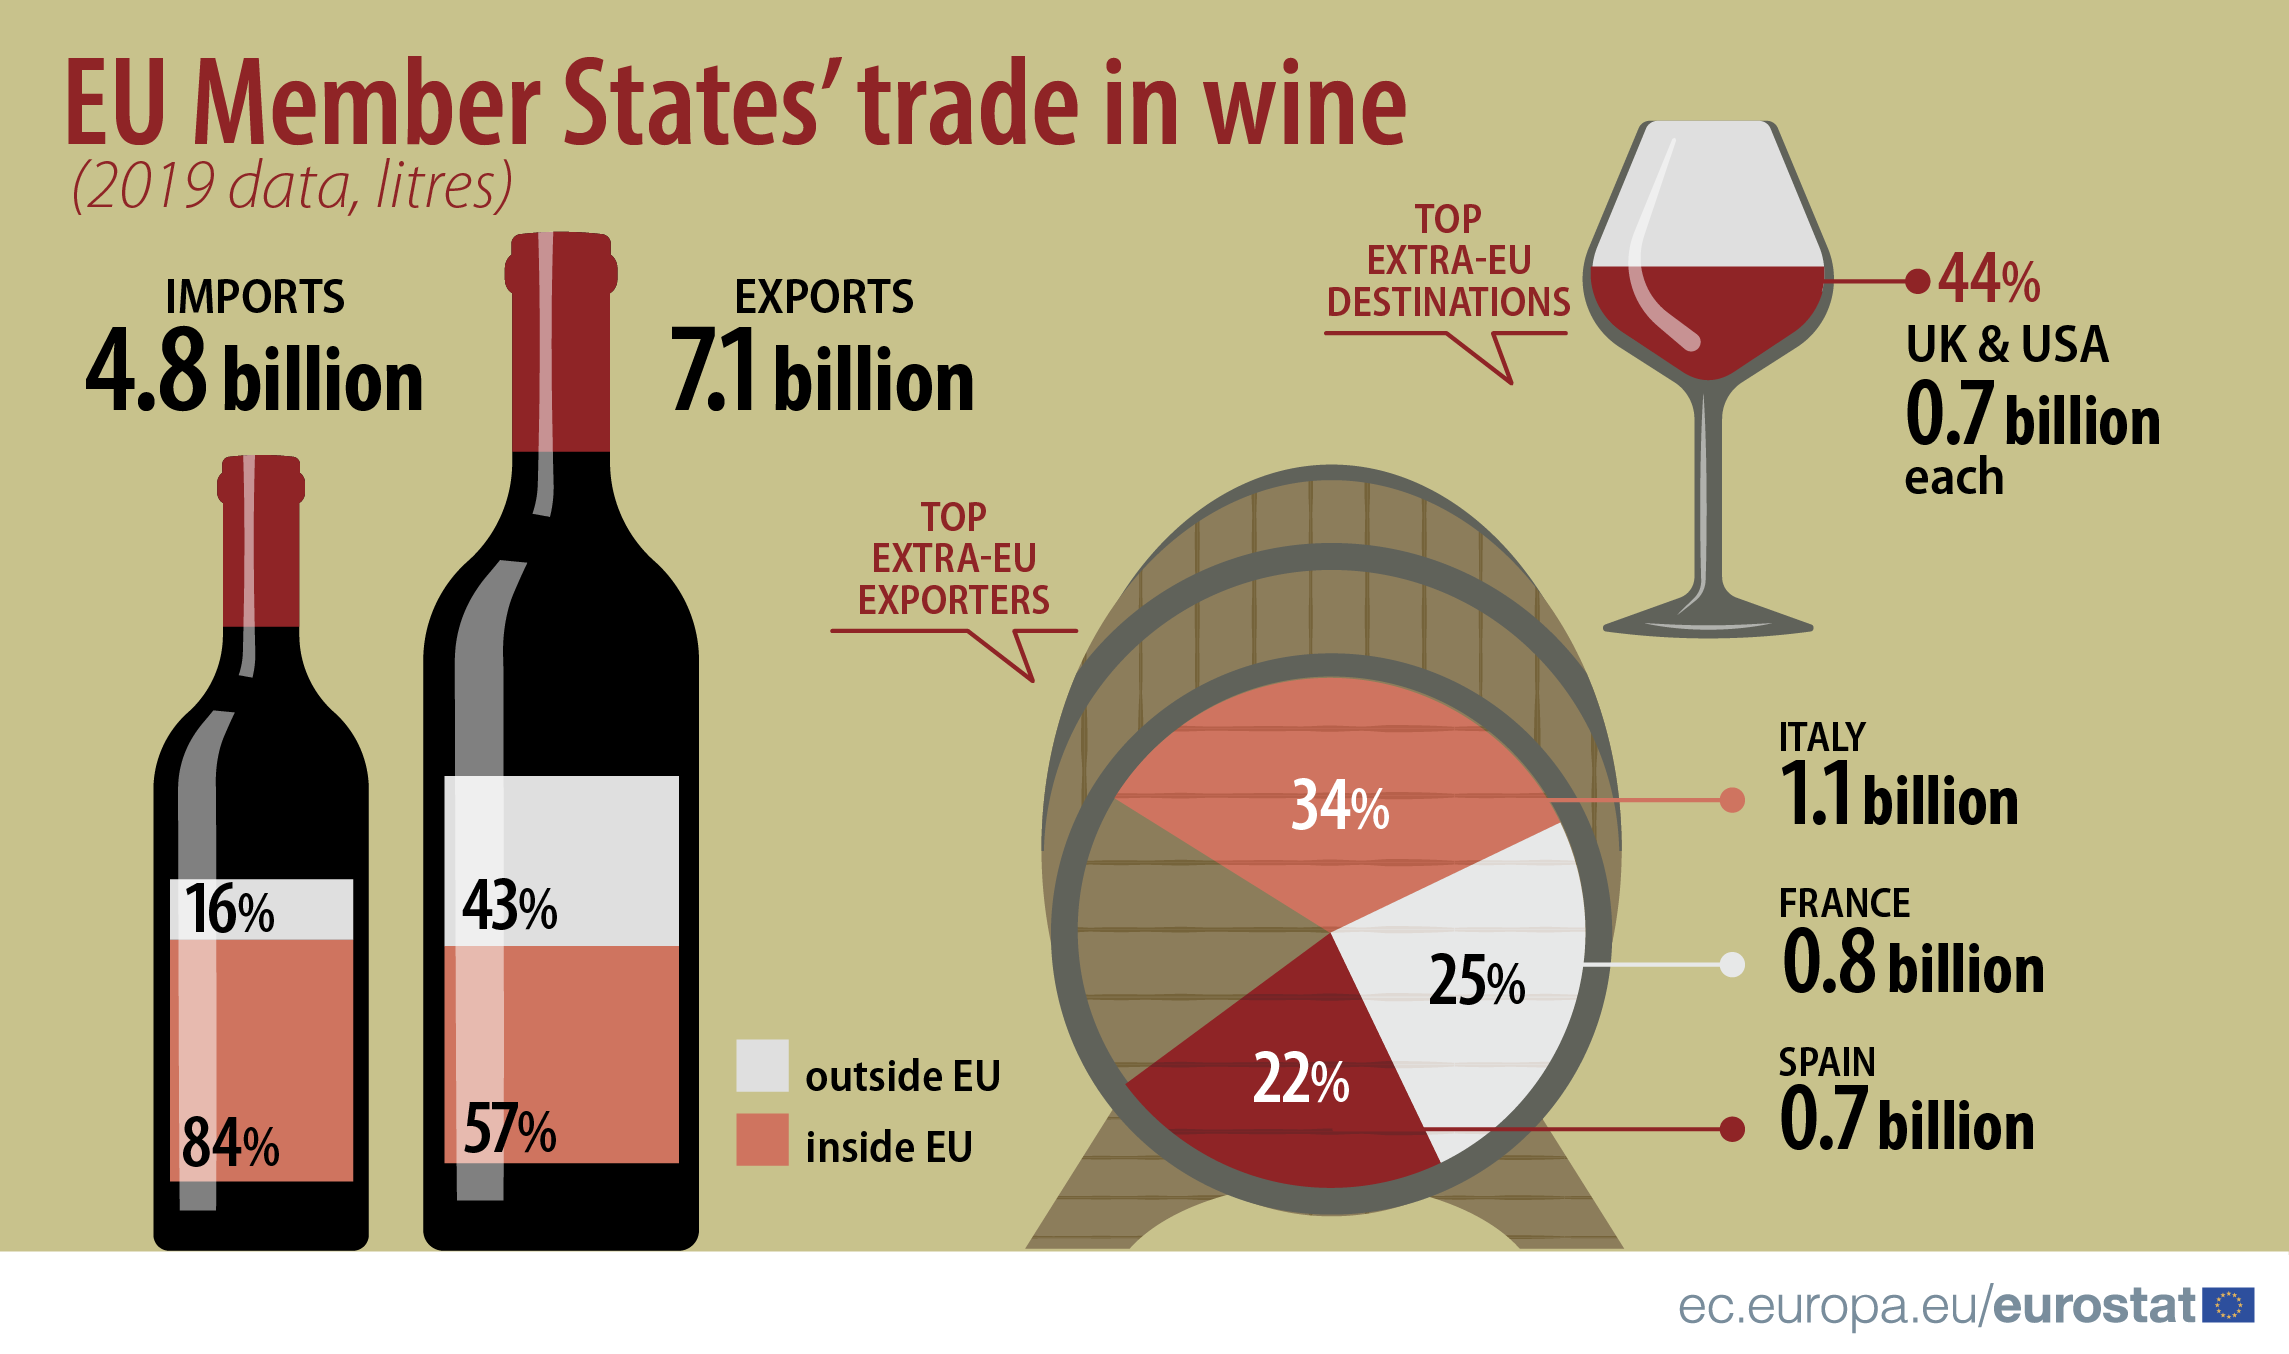 Infographic: EU Member States trade in wine